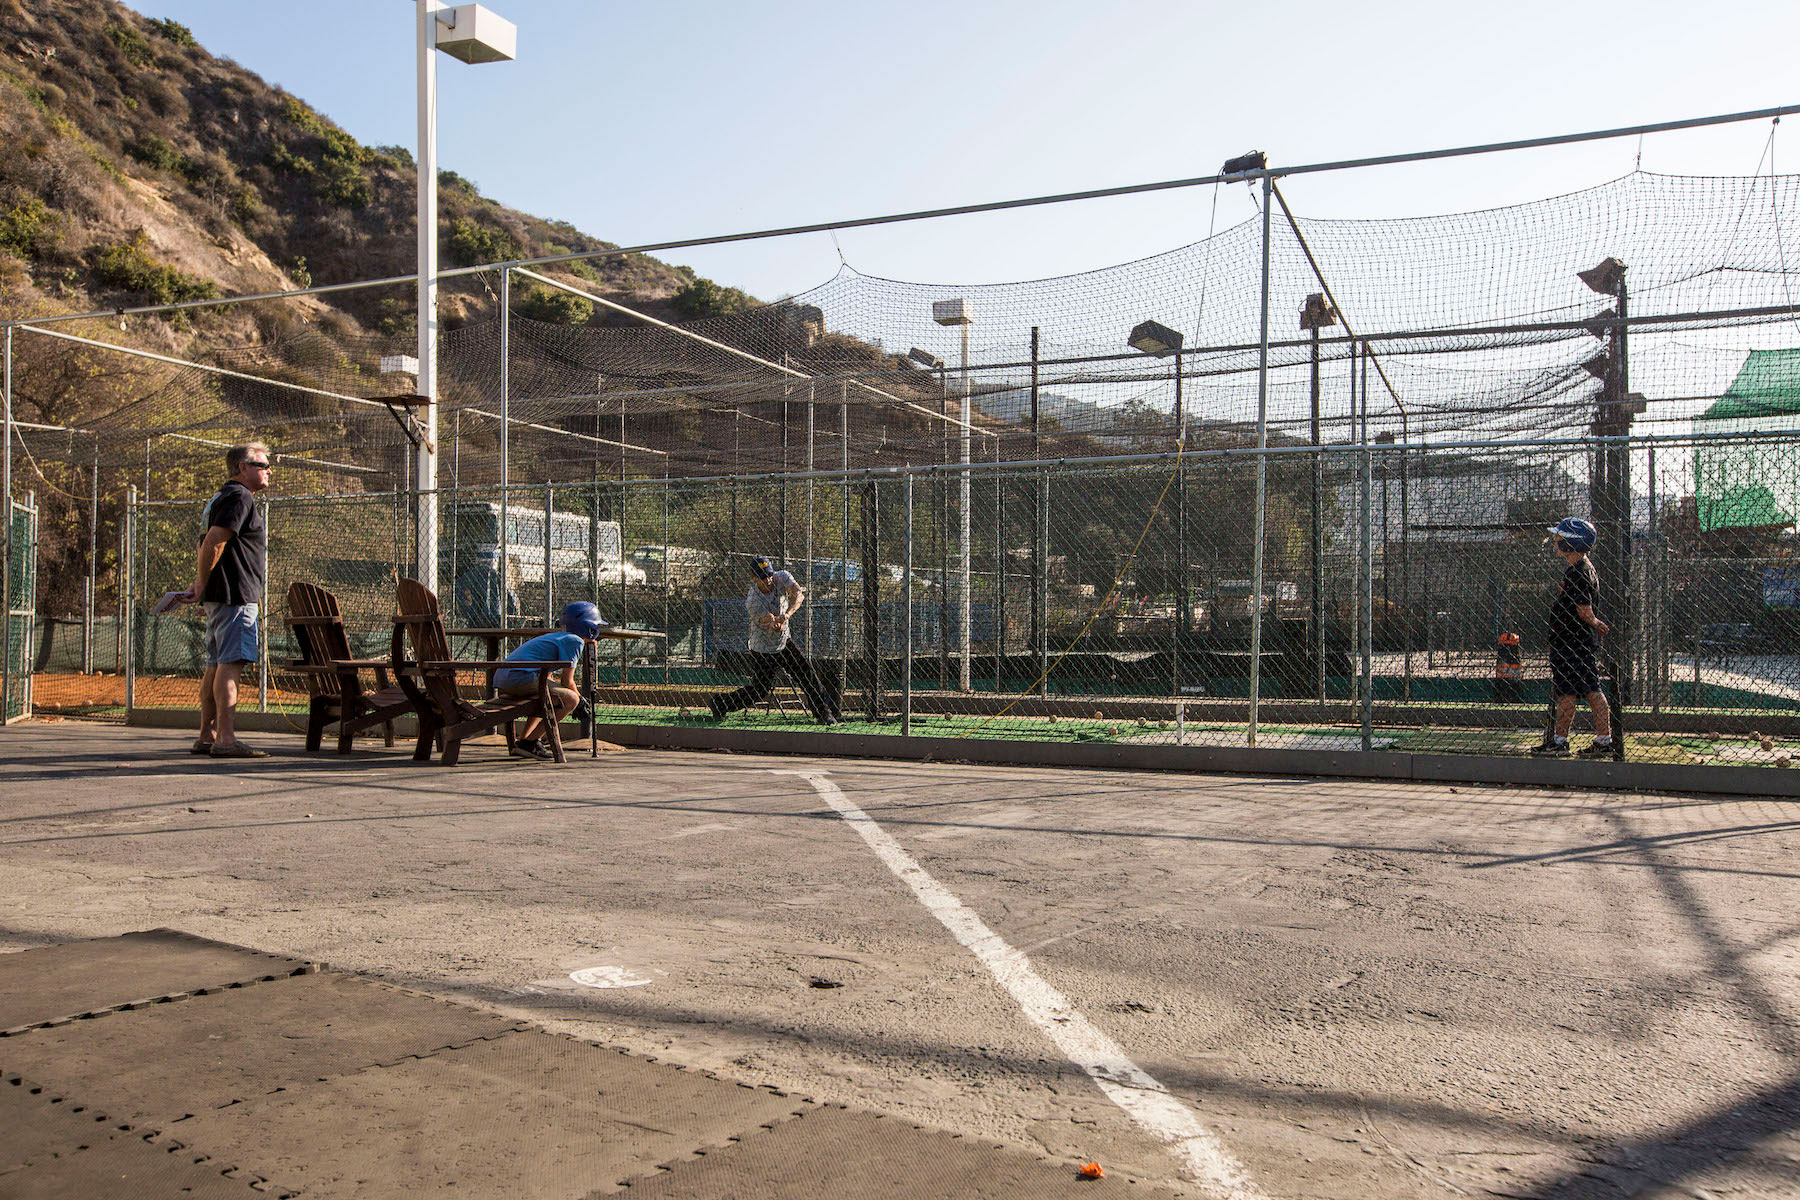 Orin Neufeld batting cages